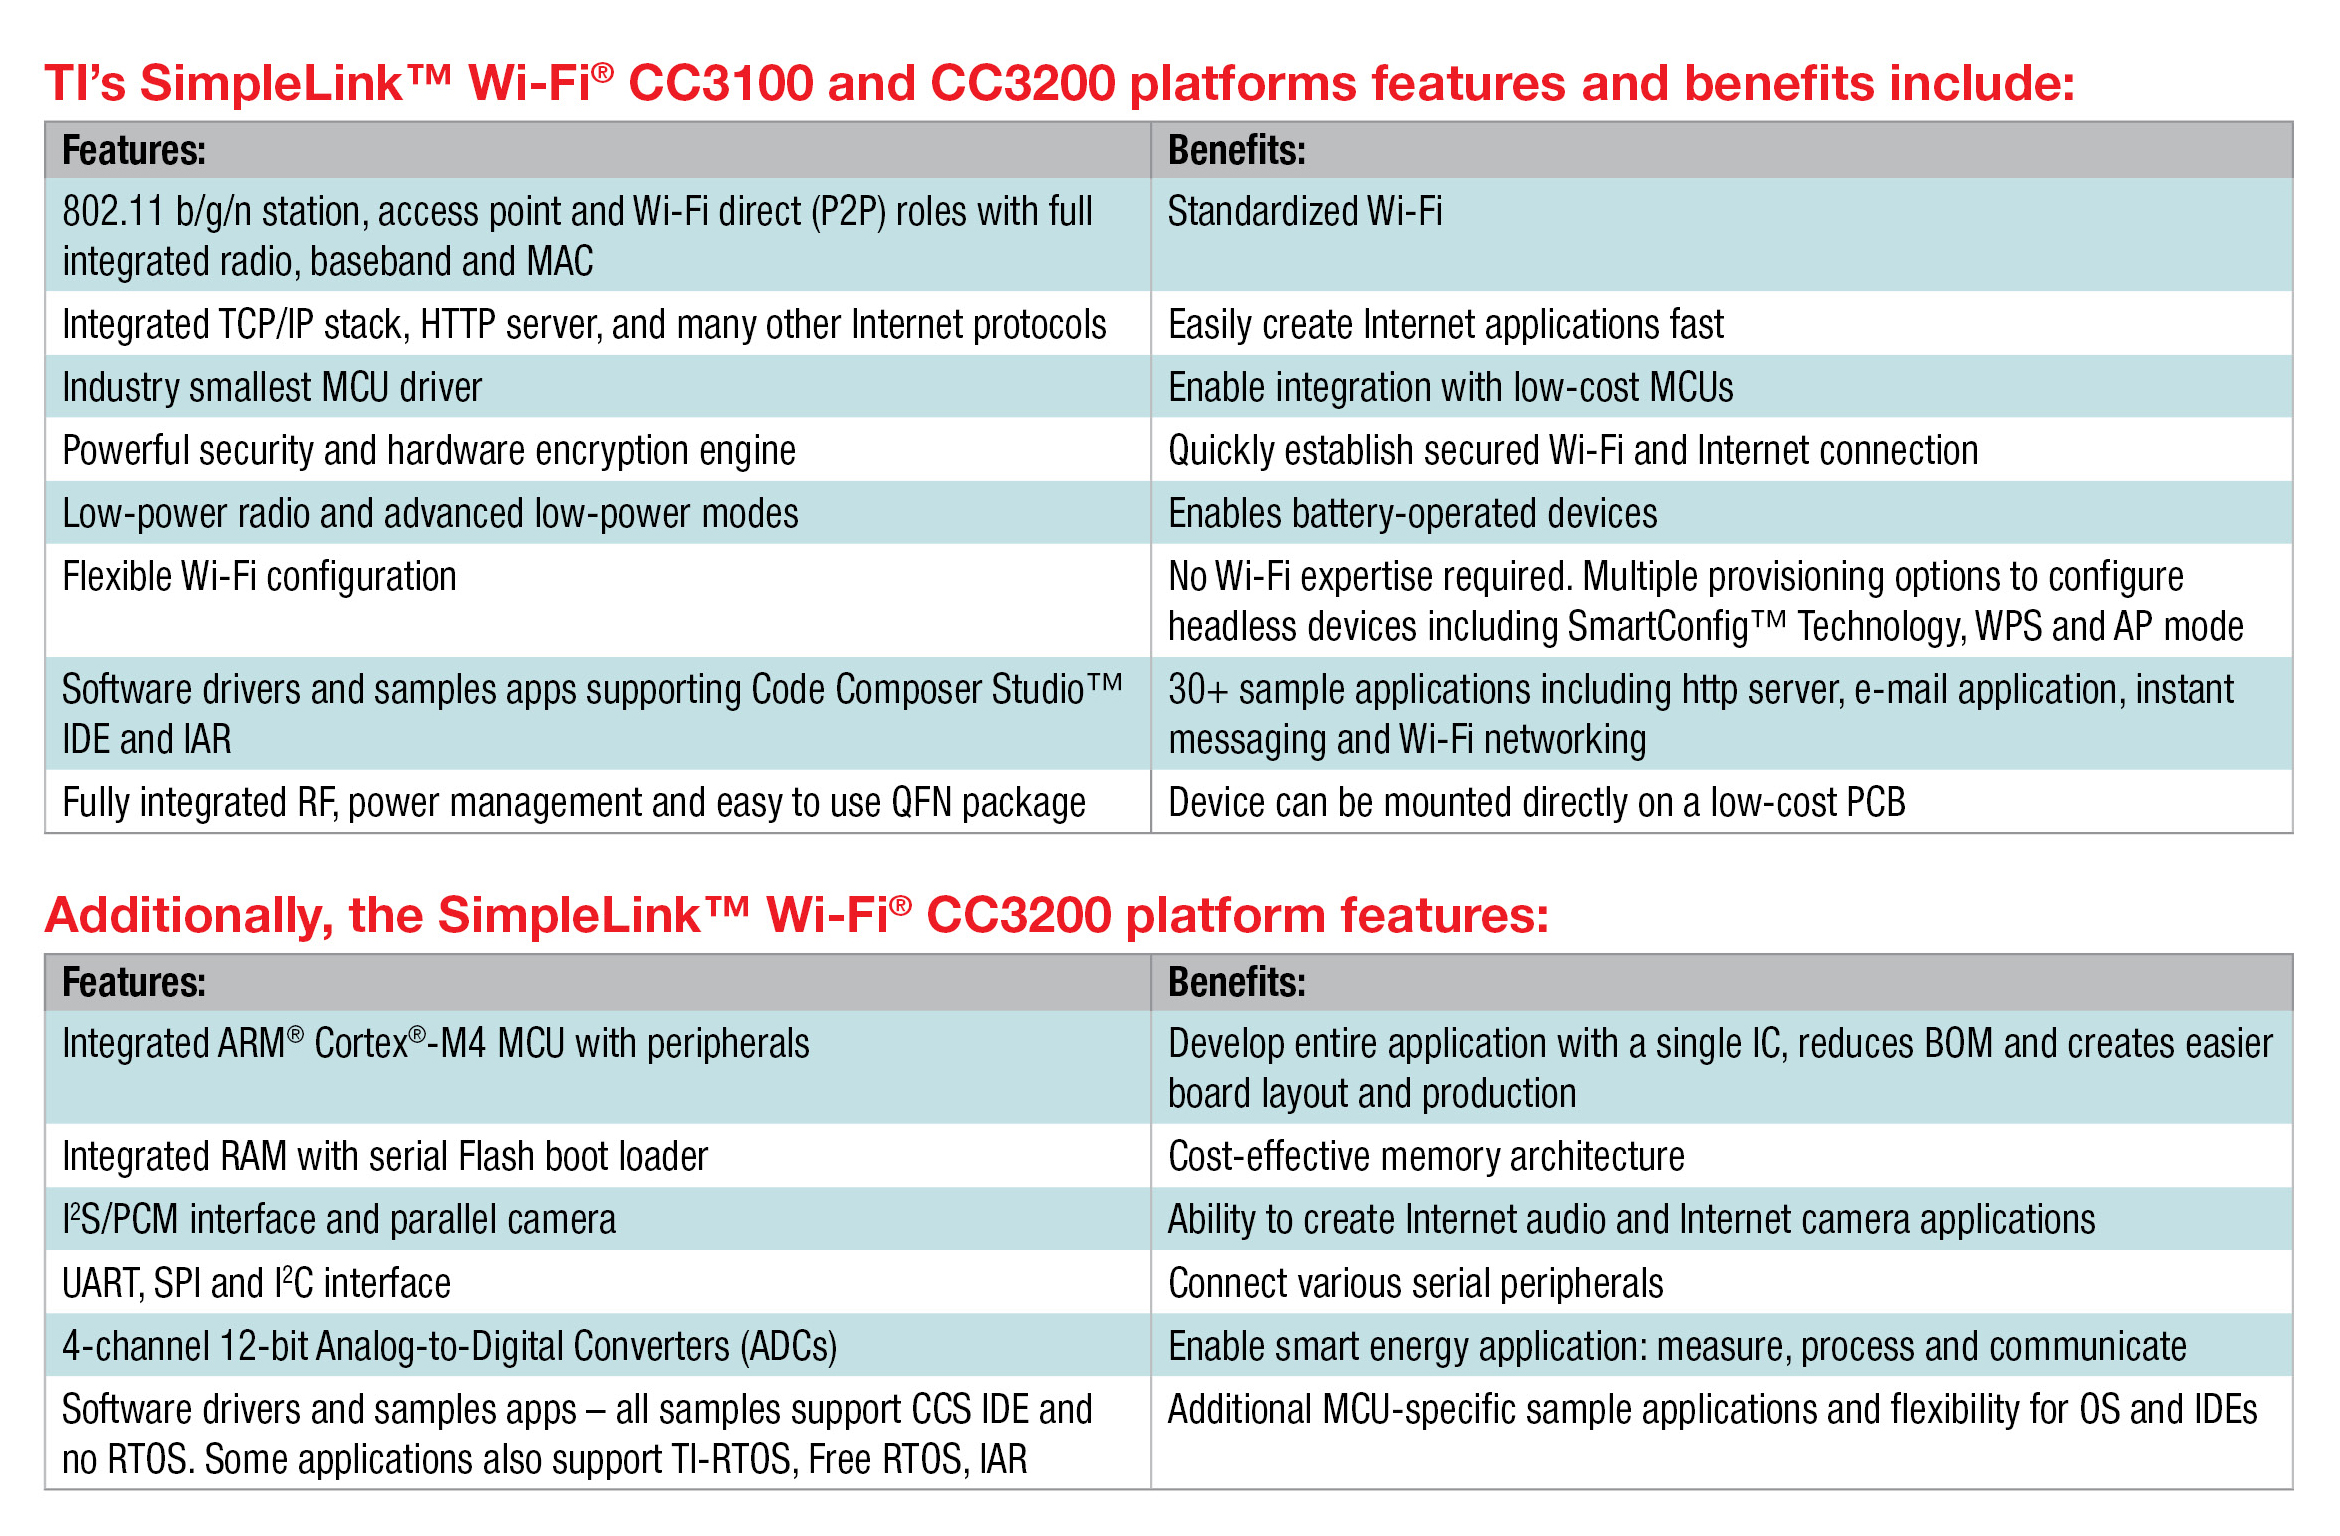 Features and benefits of TI's SimpleLink Wi-Fi CC3100 and CC3200 platforms